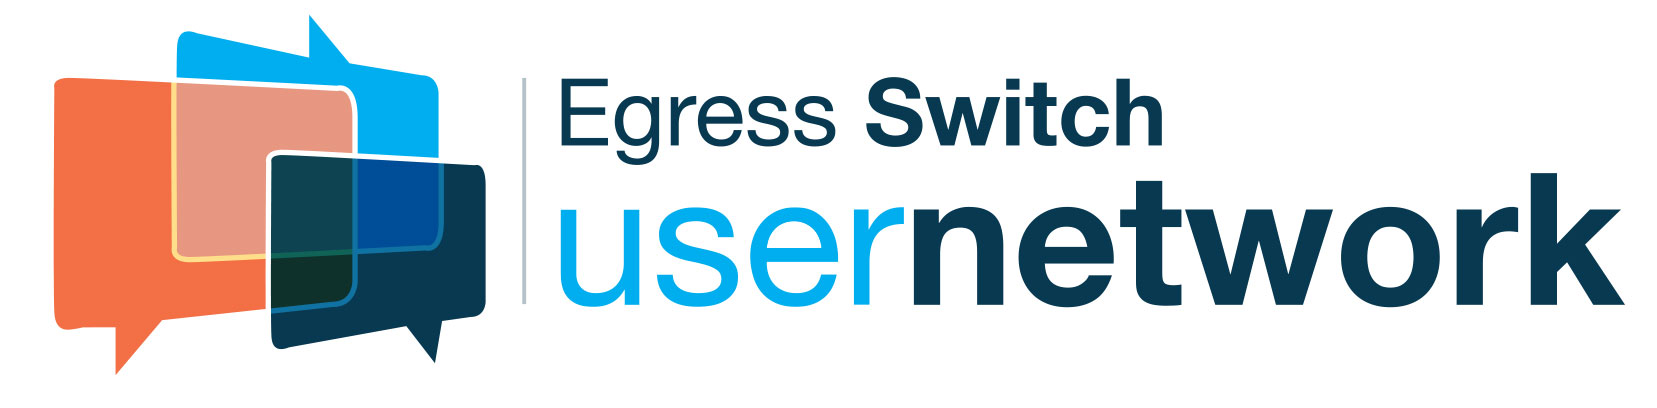 11th May 2017 – Egress Switch User Network, London